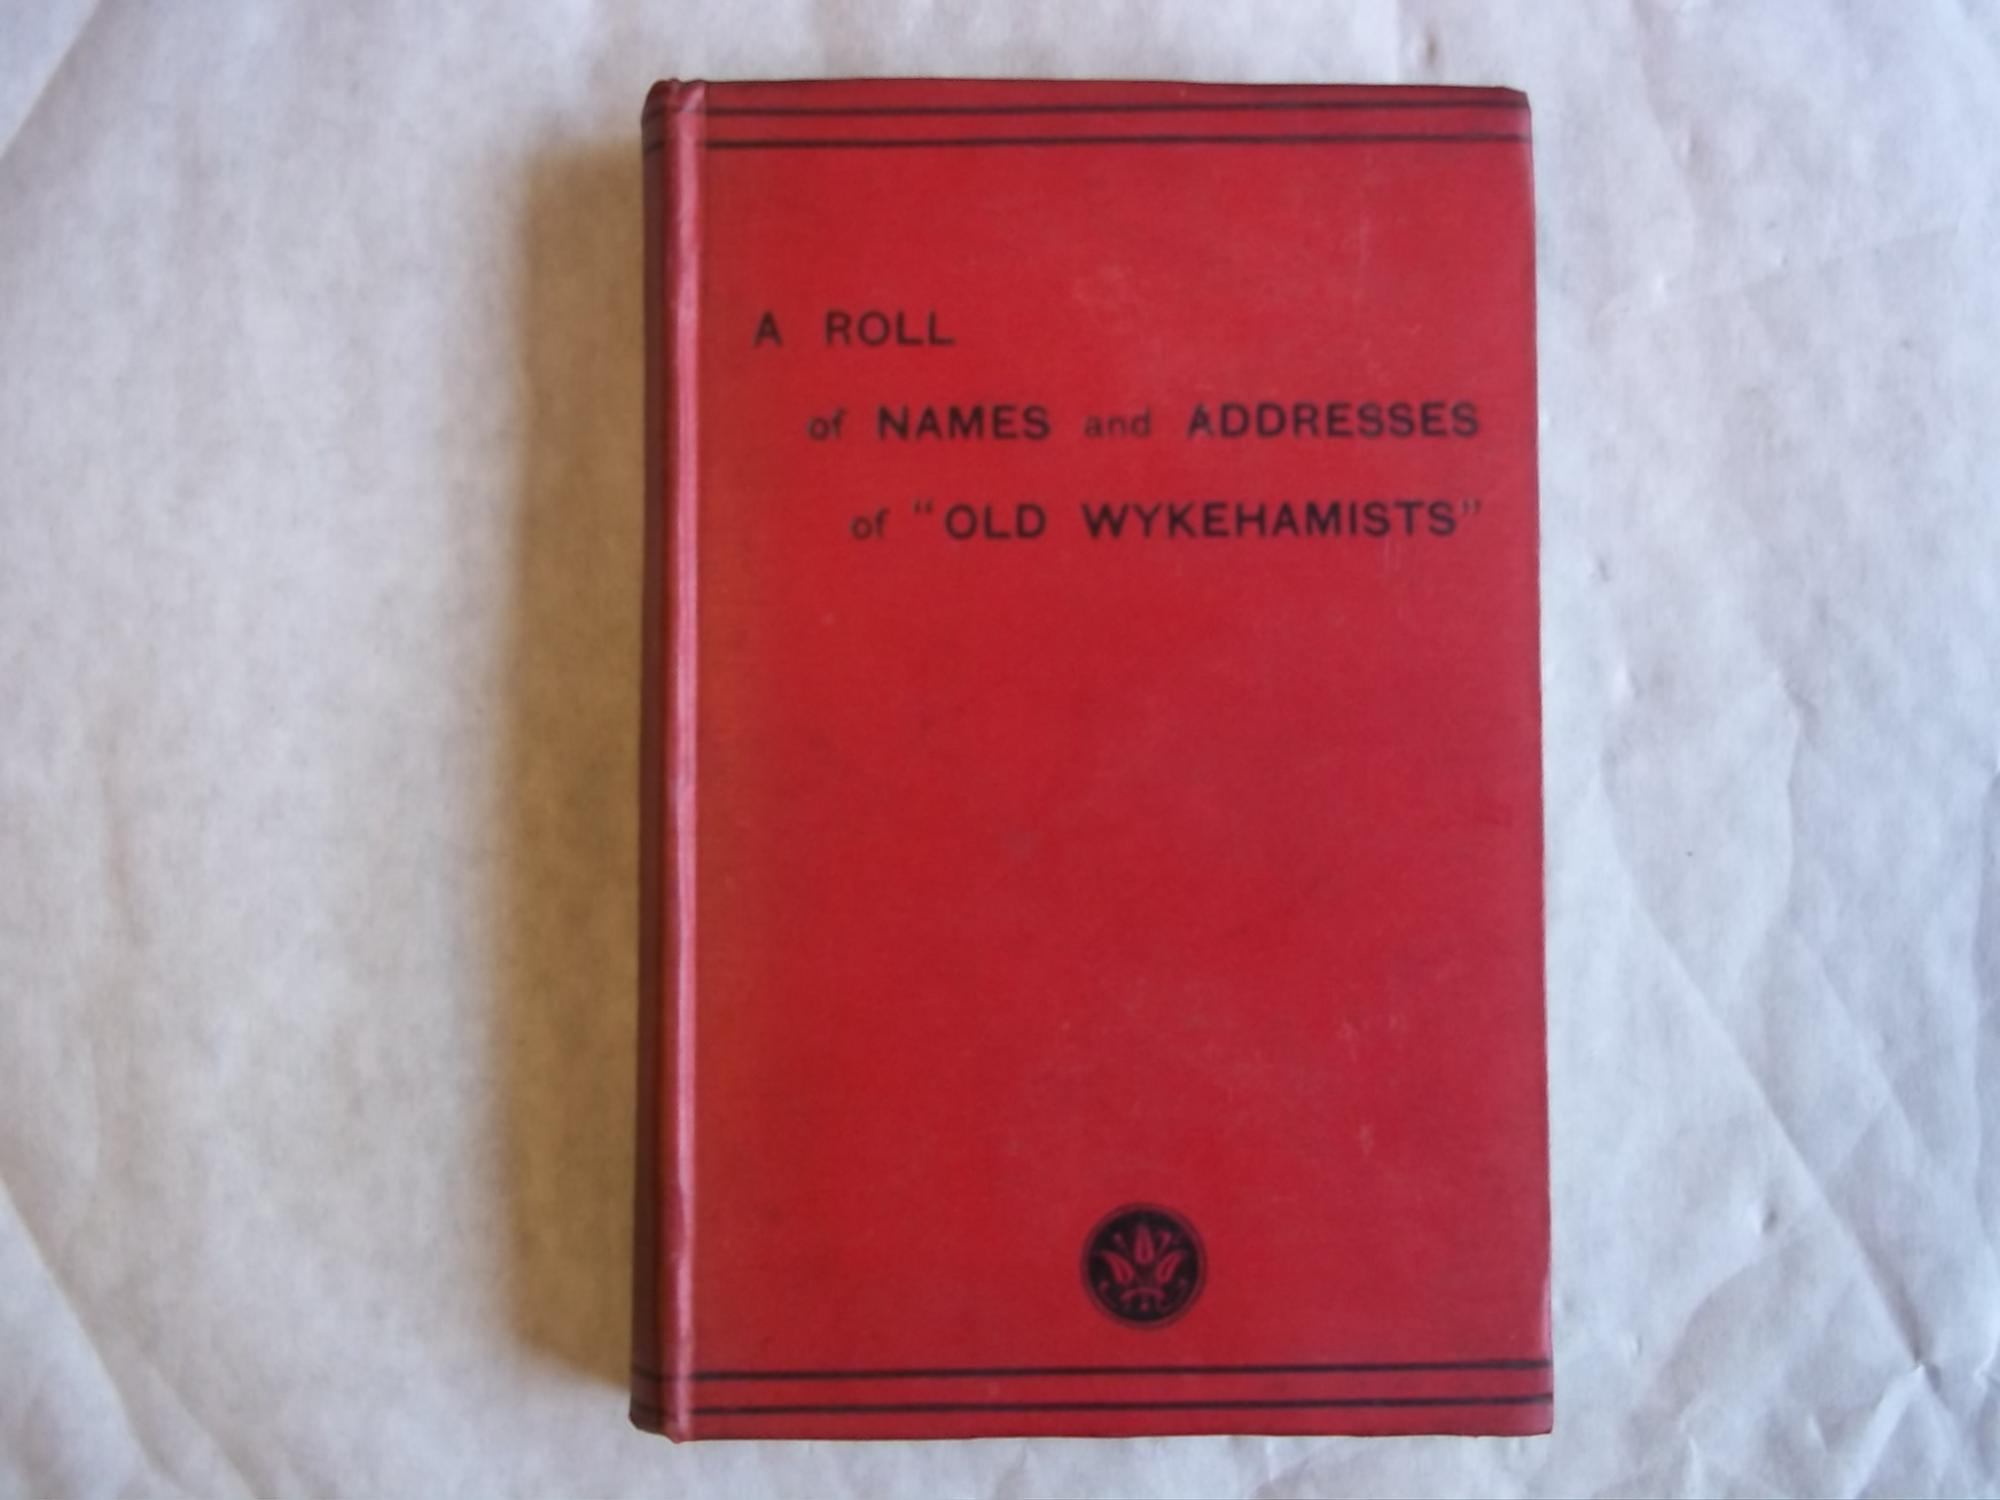 List of Old Wykehamists